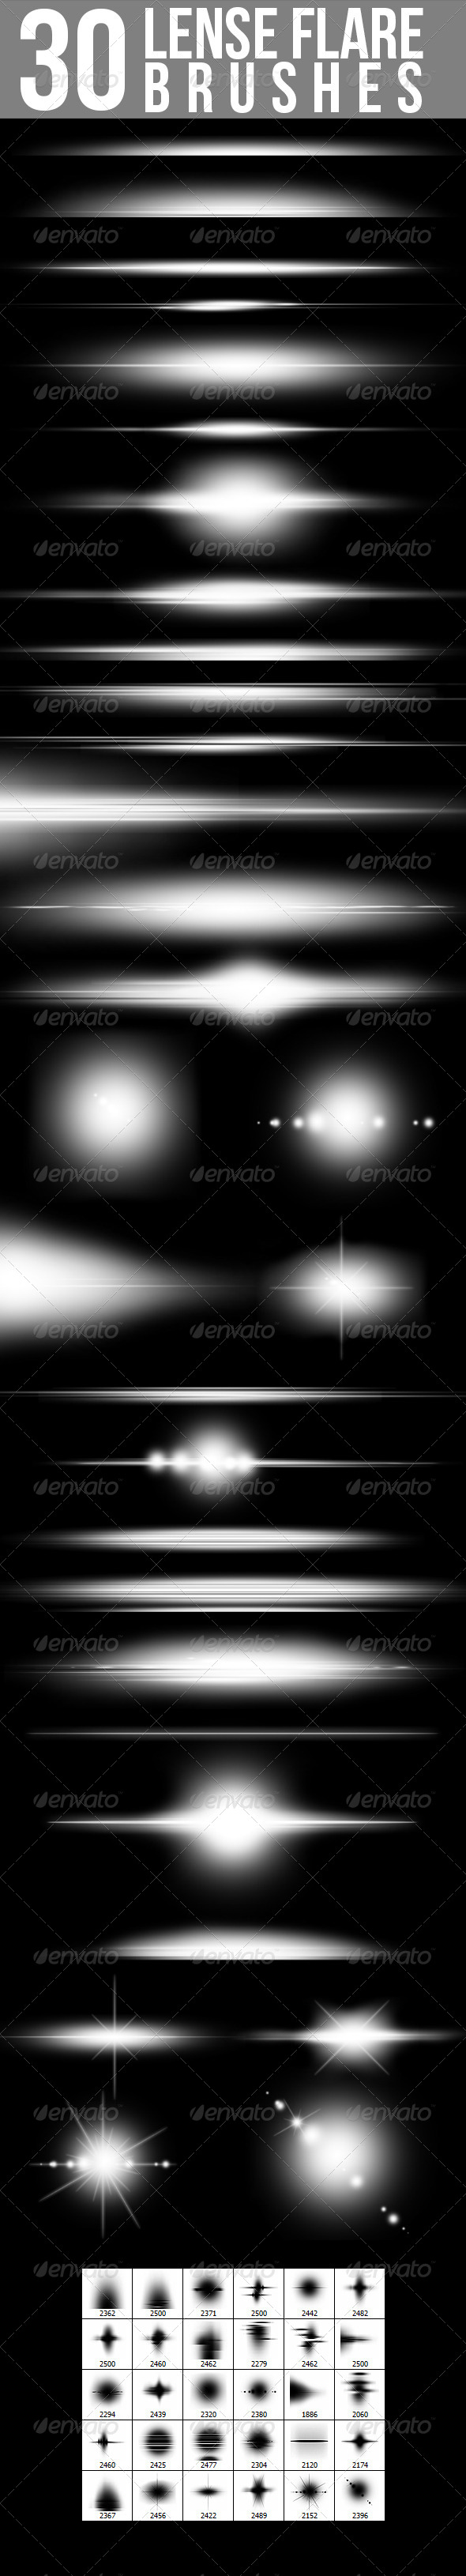 30 Lense Flare Brushes - GraphicRiver Item for Sale